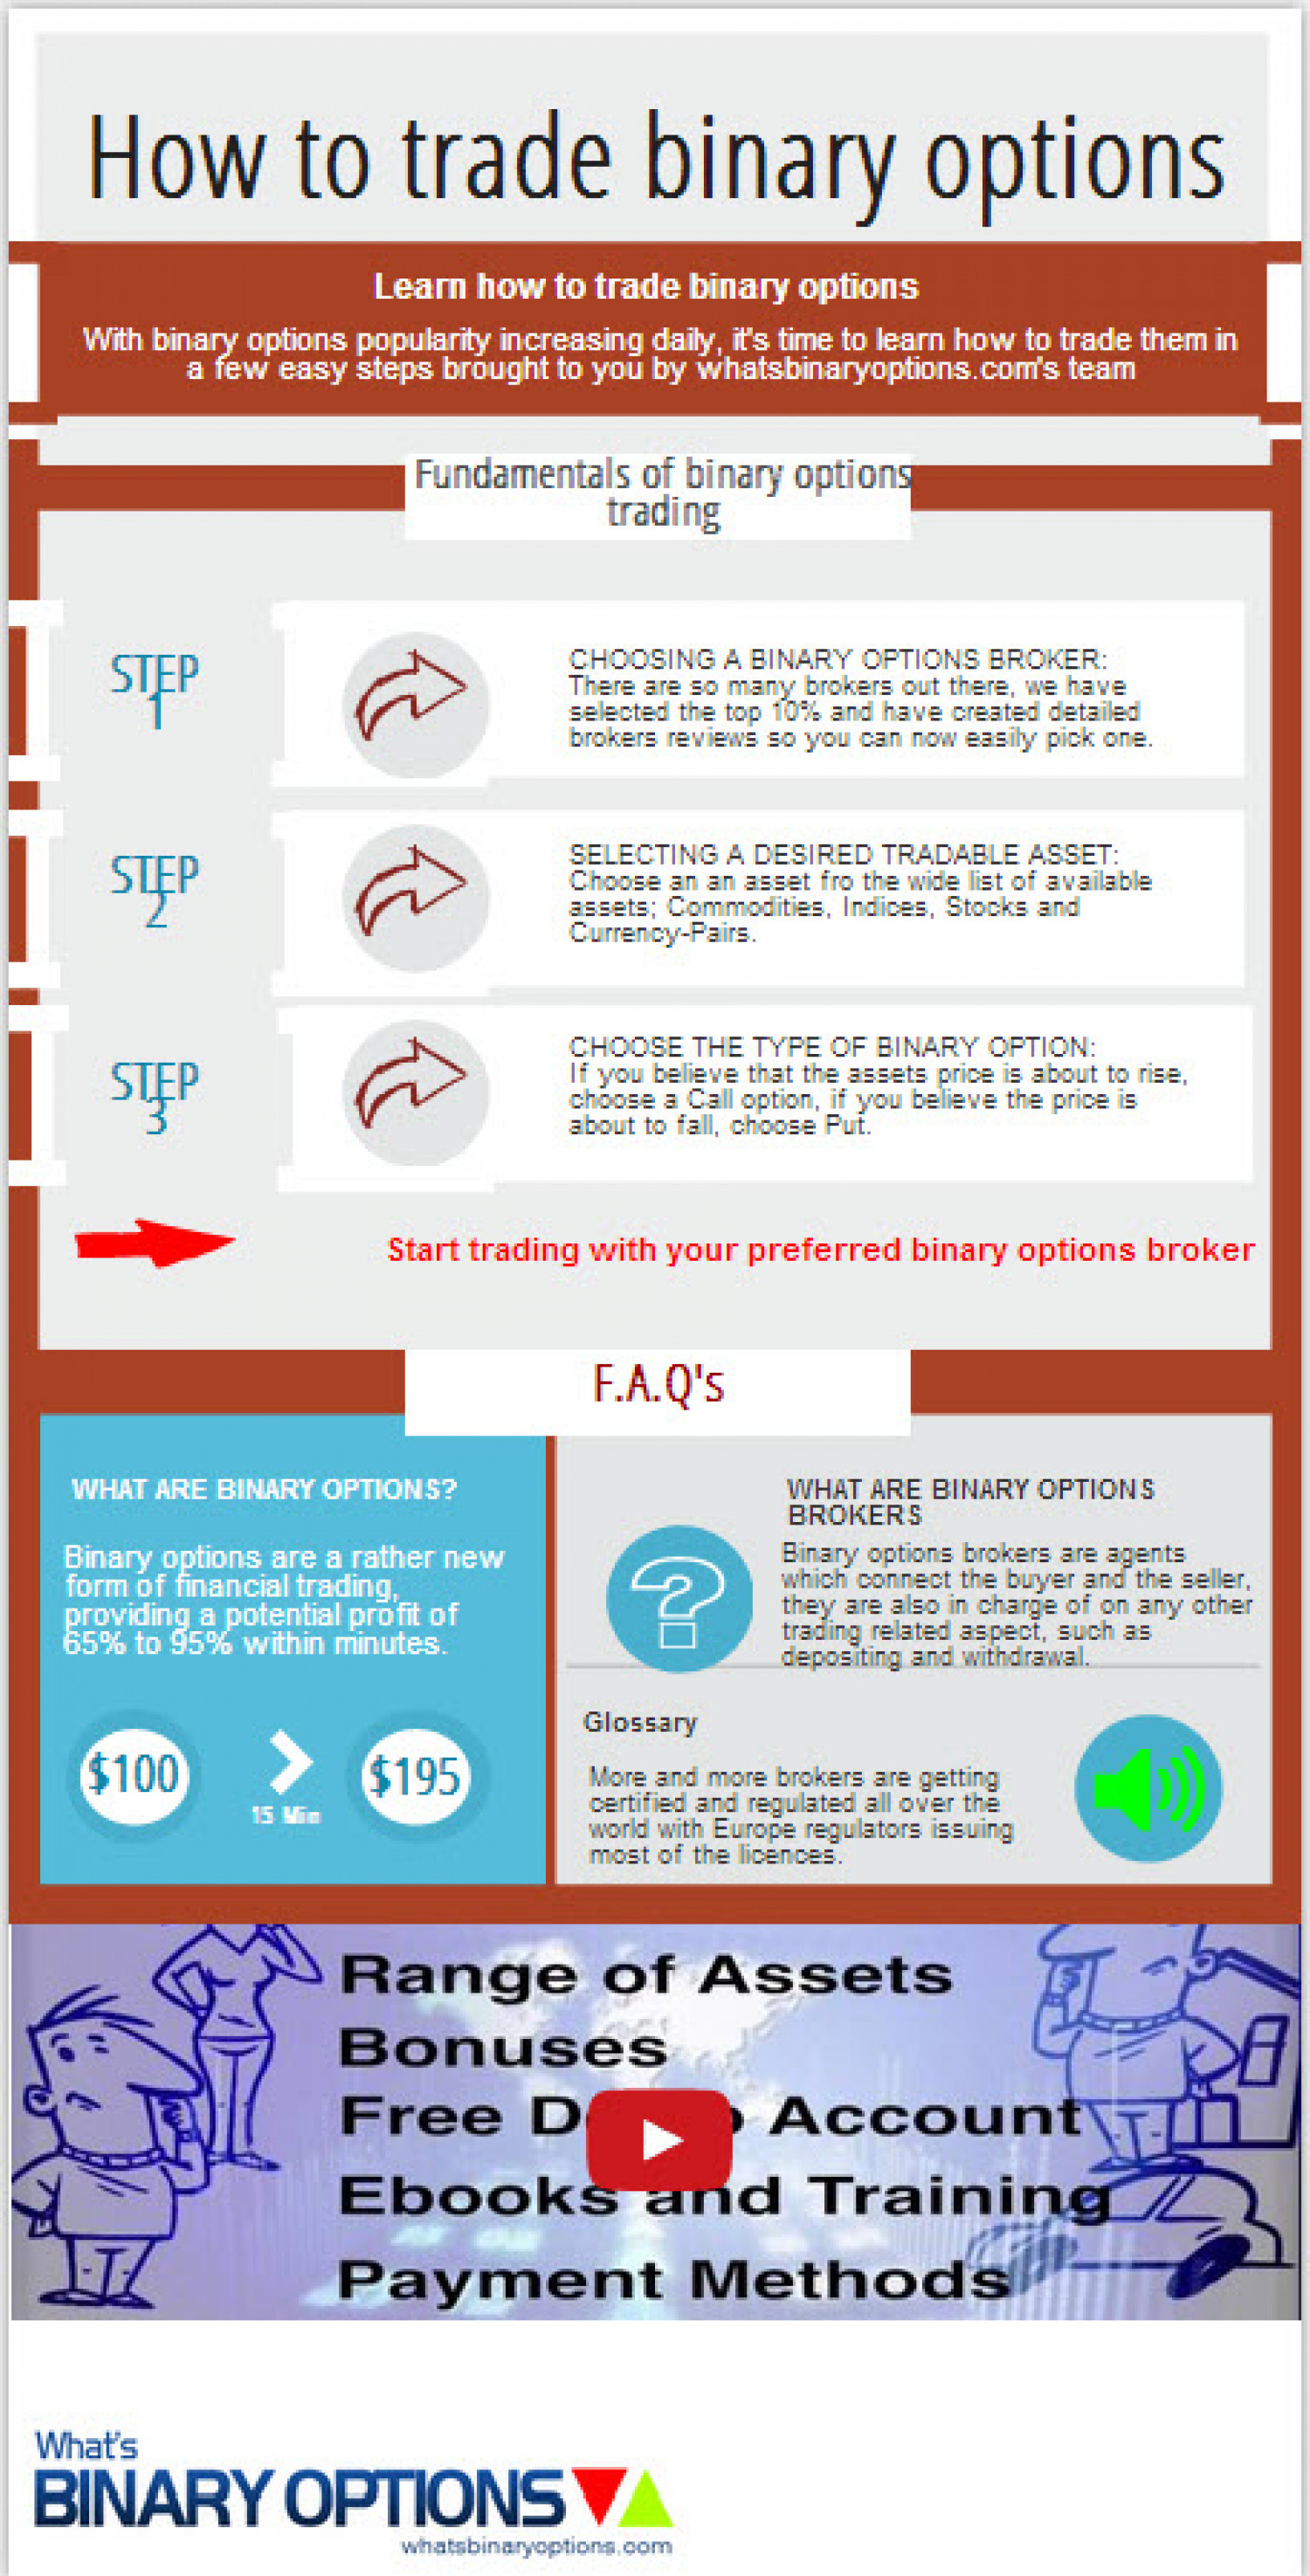 Compare binary options brokers